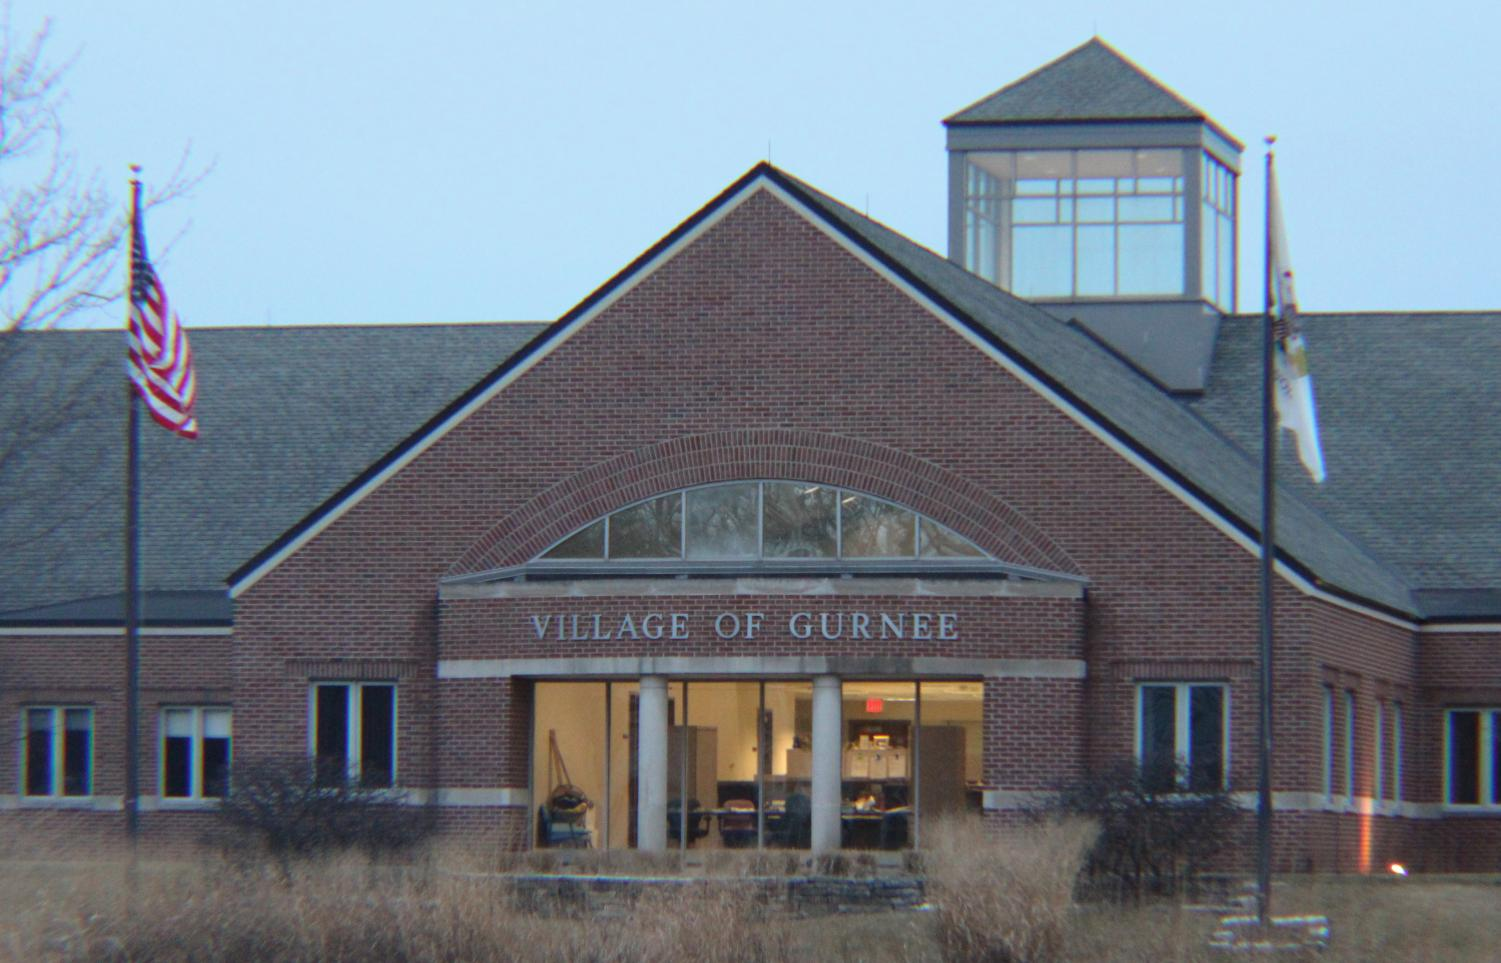 In 1987, five members of the KKK announced their plans for a rally in Gurnee at the town's village hall, seen above. The city issued a permit for the event, but a rally was never held.